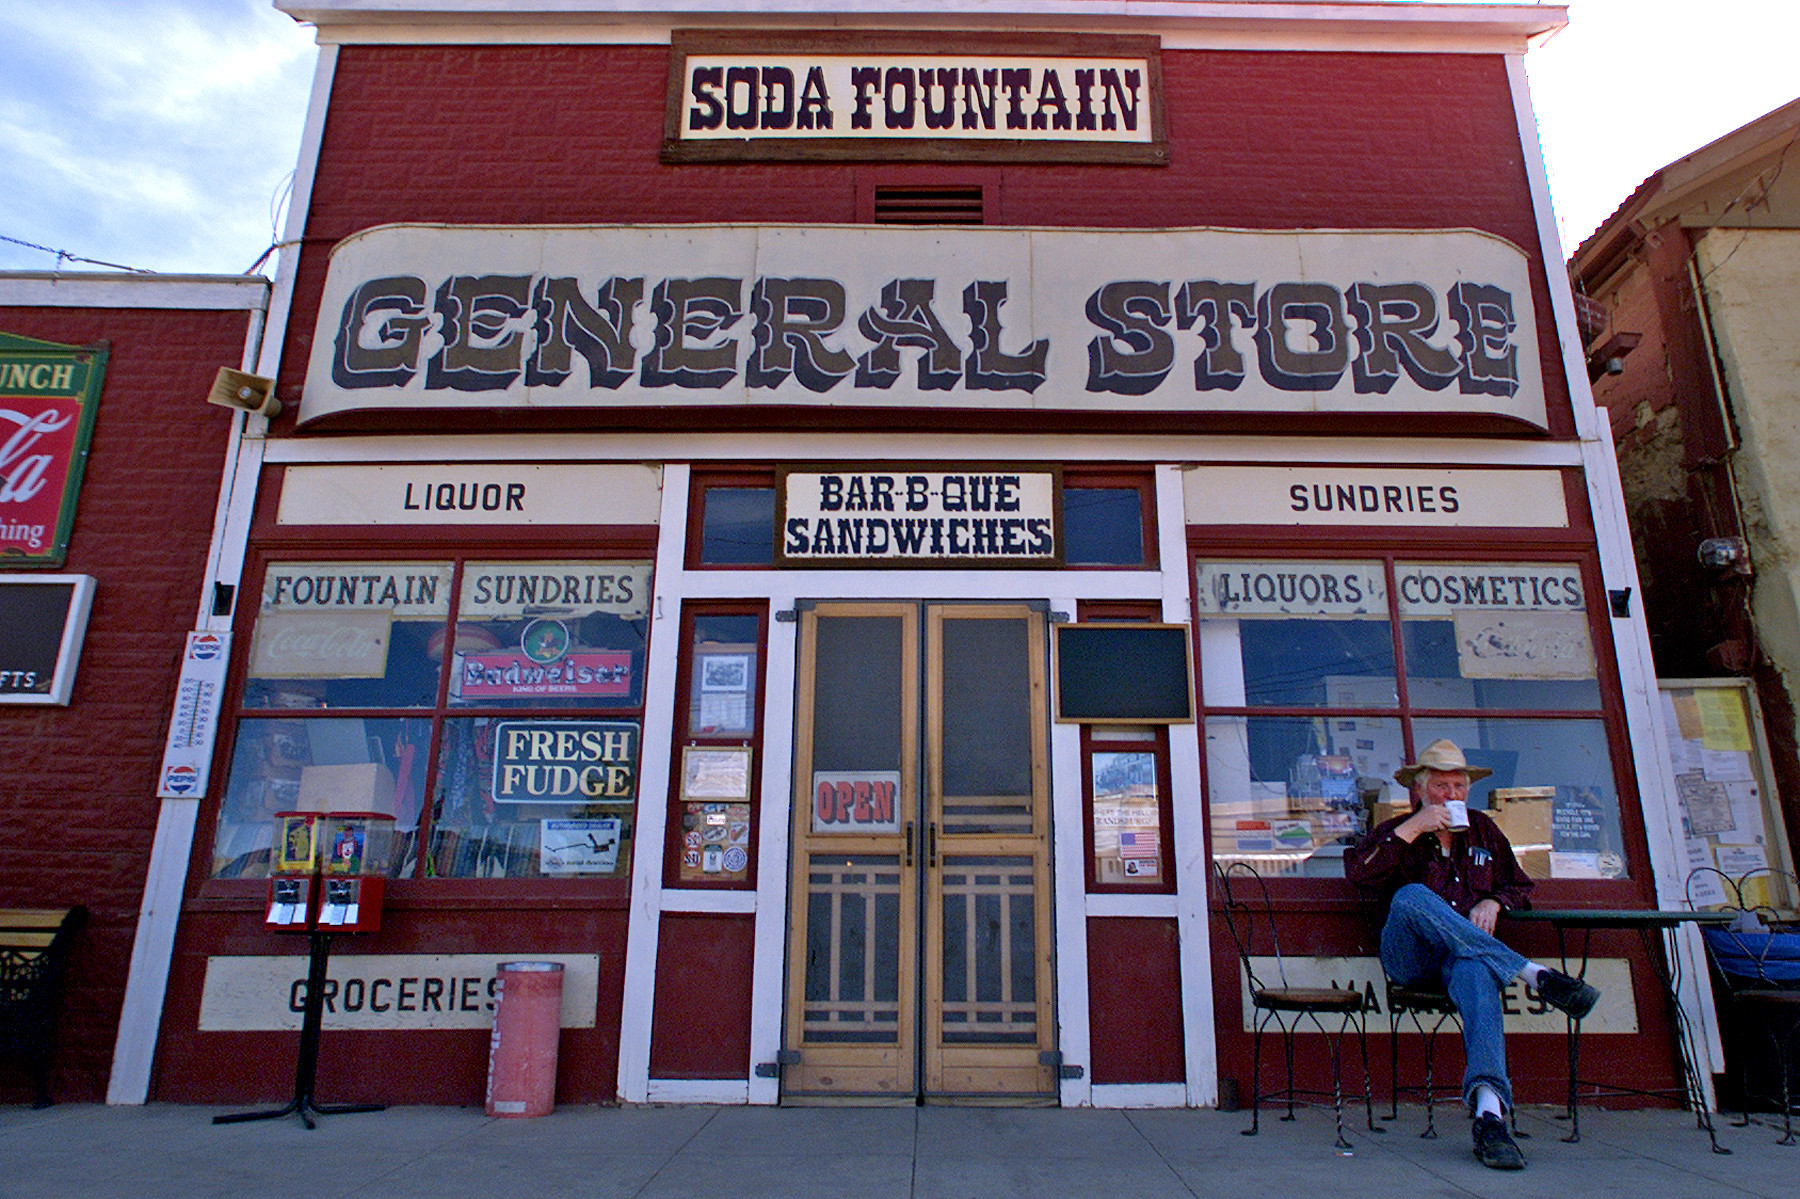 The General Store was established in Randsburg, Calif., around 1896, just months after the discovery of gold in the town.